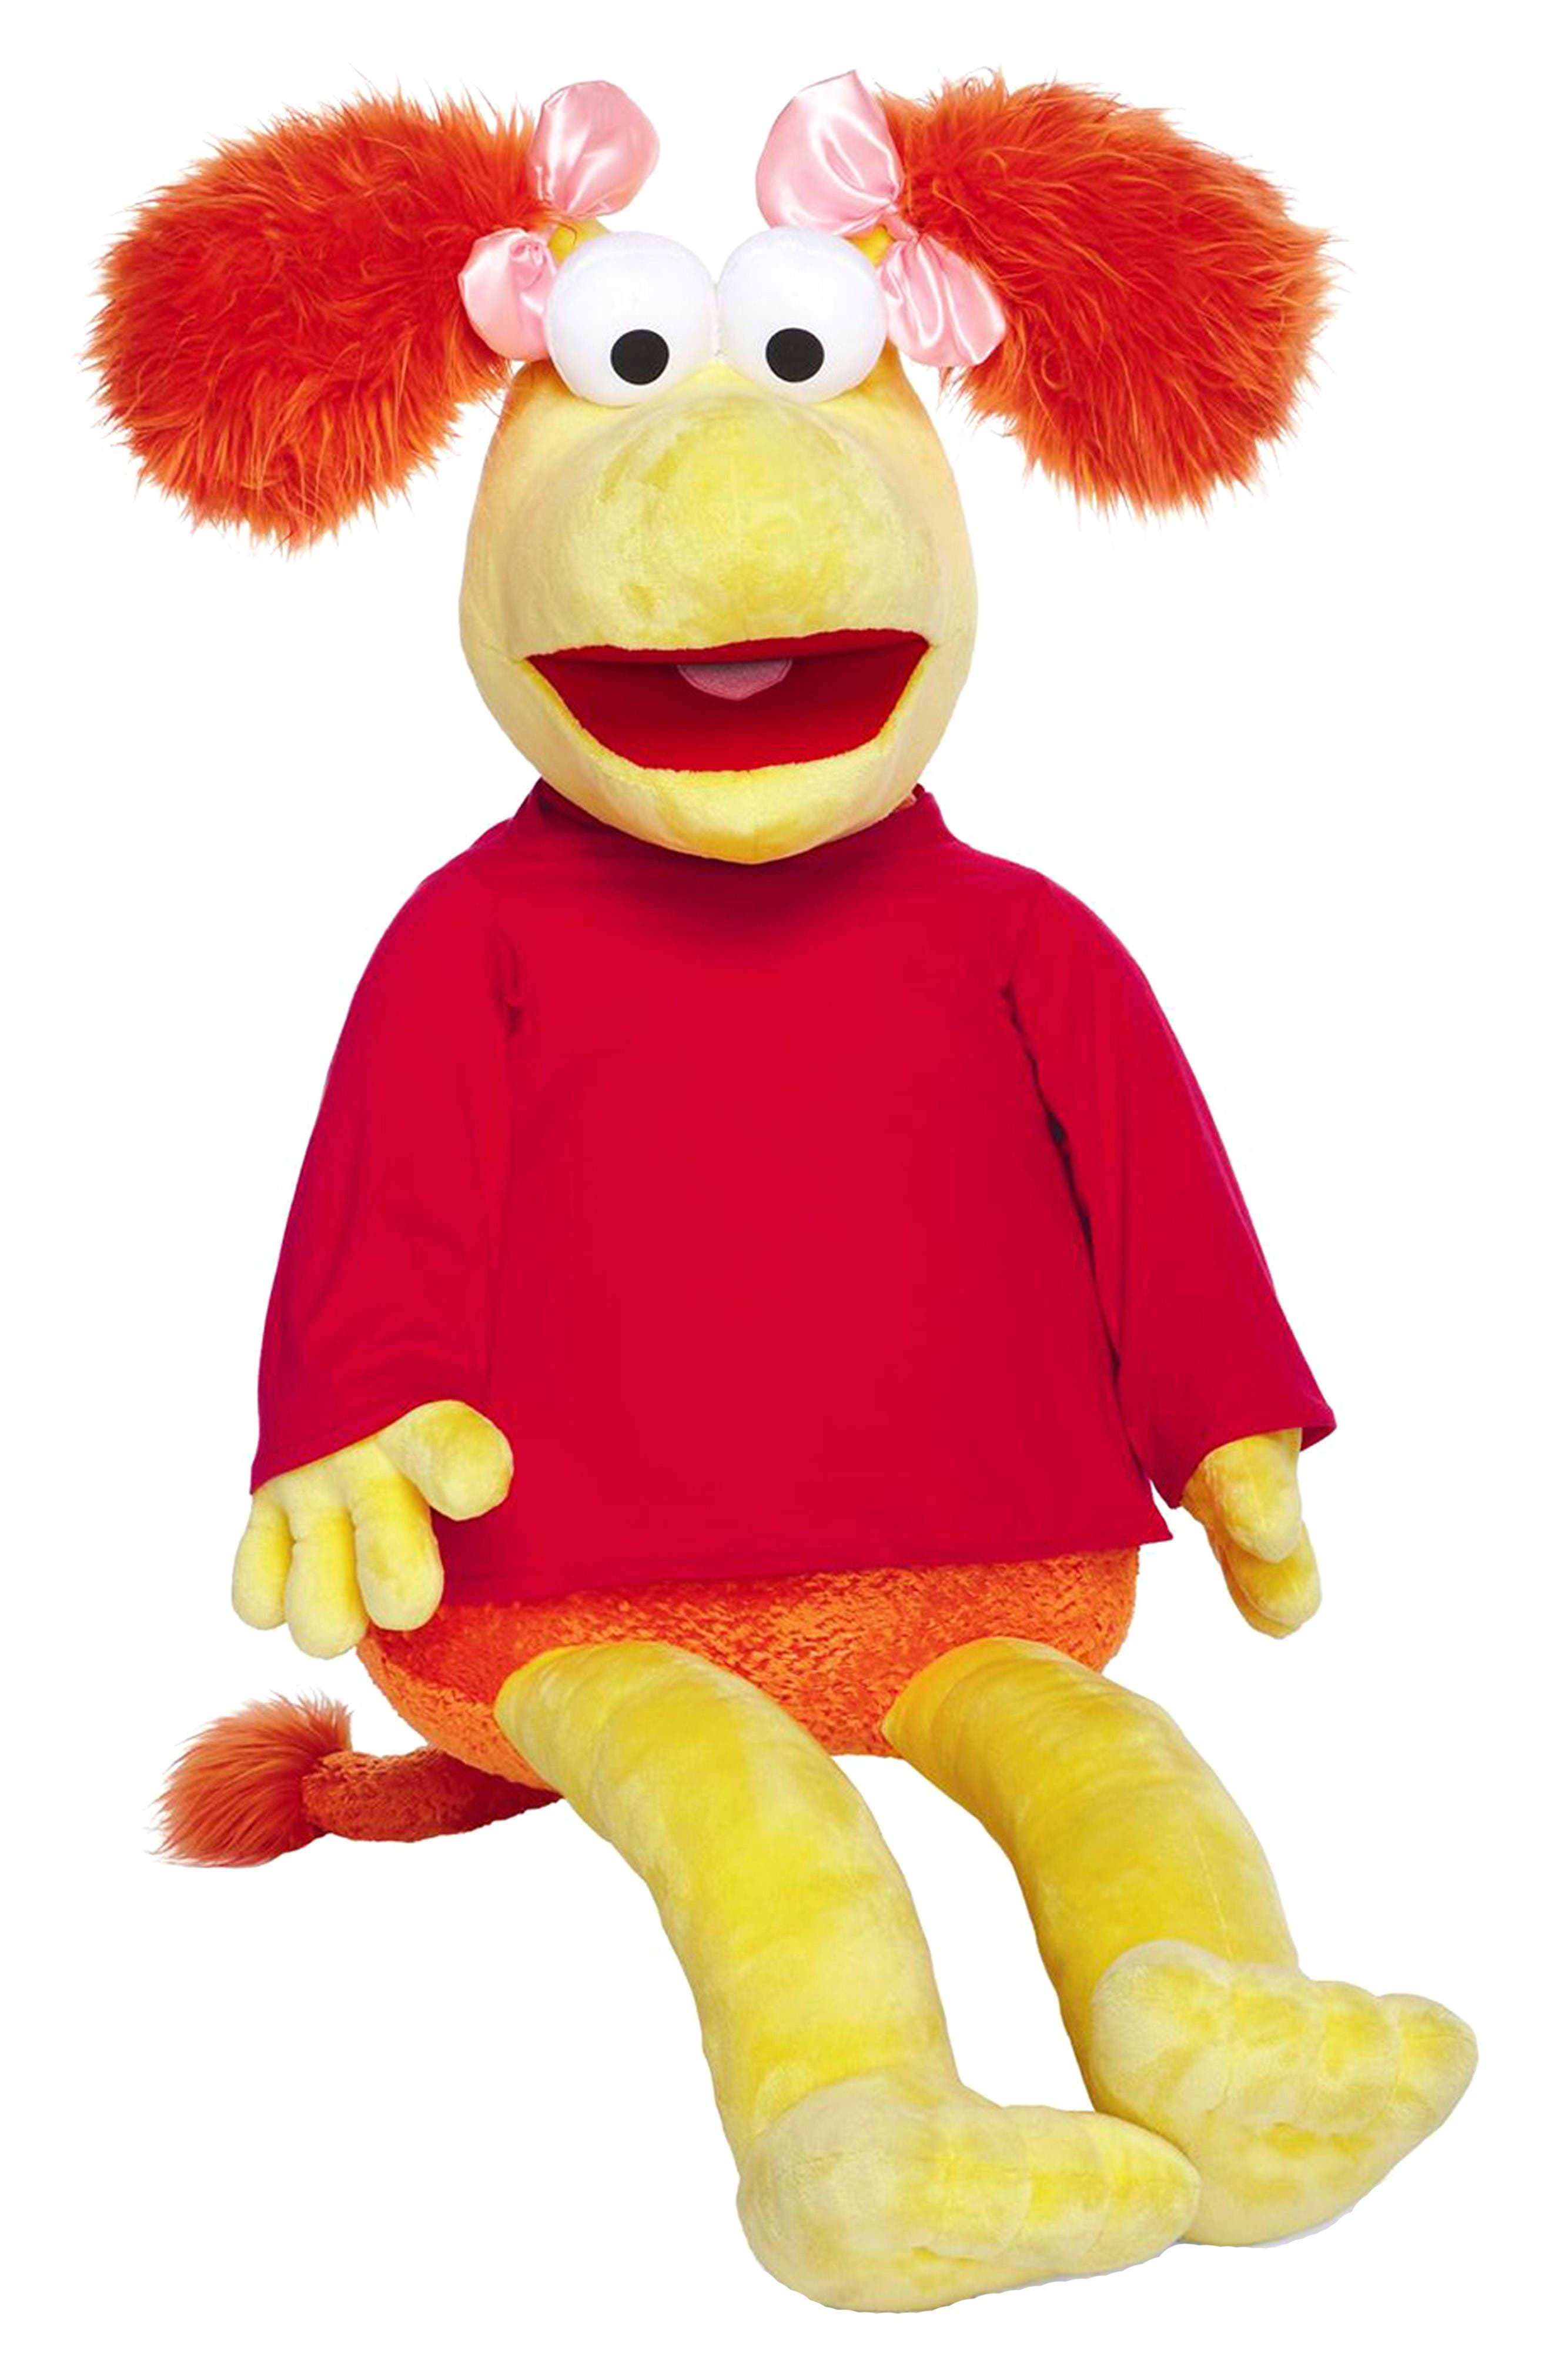 Fraggle Rock Jumbo Red Stuffed Animal,                             Main thumbnail 1, color,                             Red